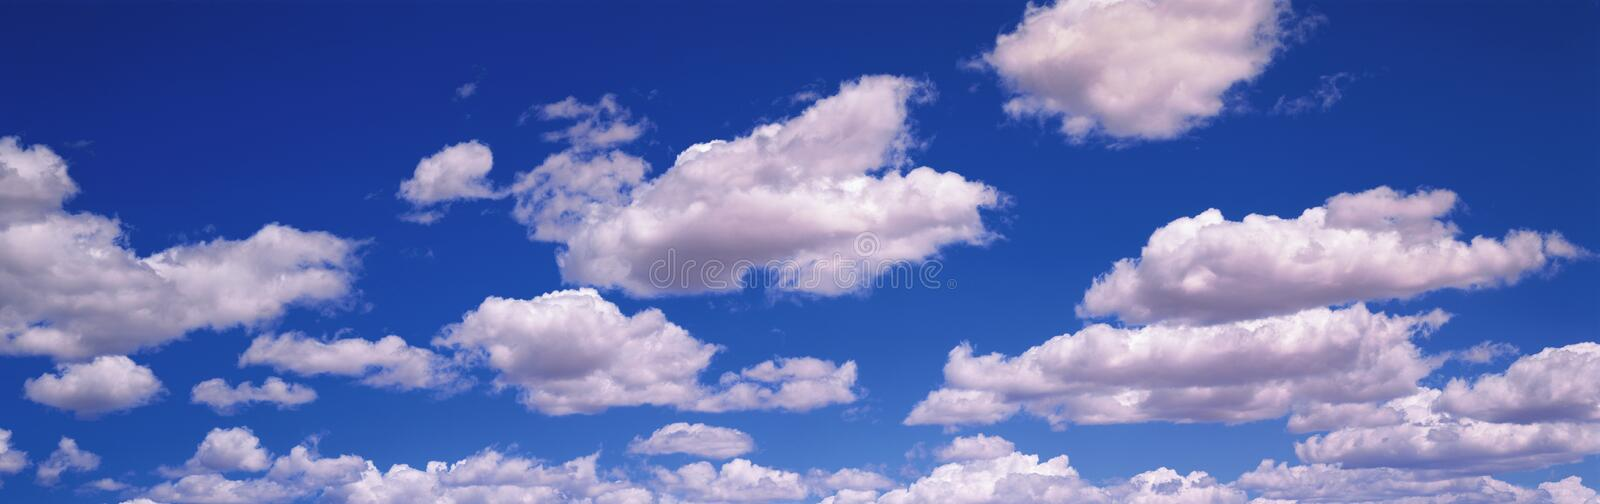 Download Blue Sky With White Puffy Clouds Stock Photo - Image: 23151236